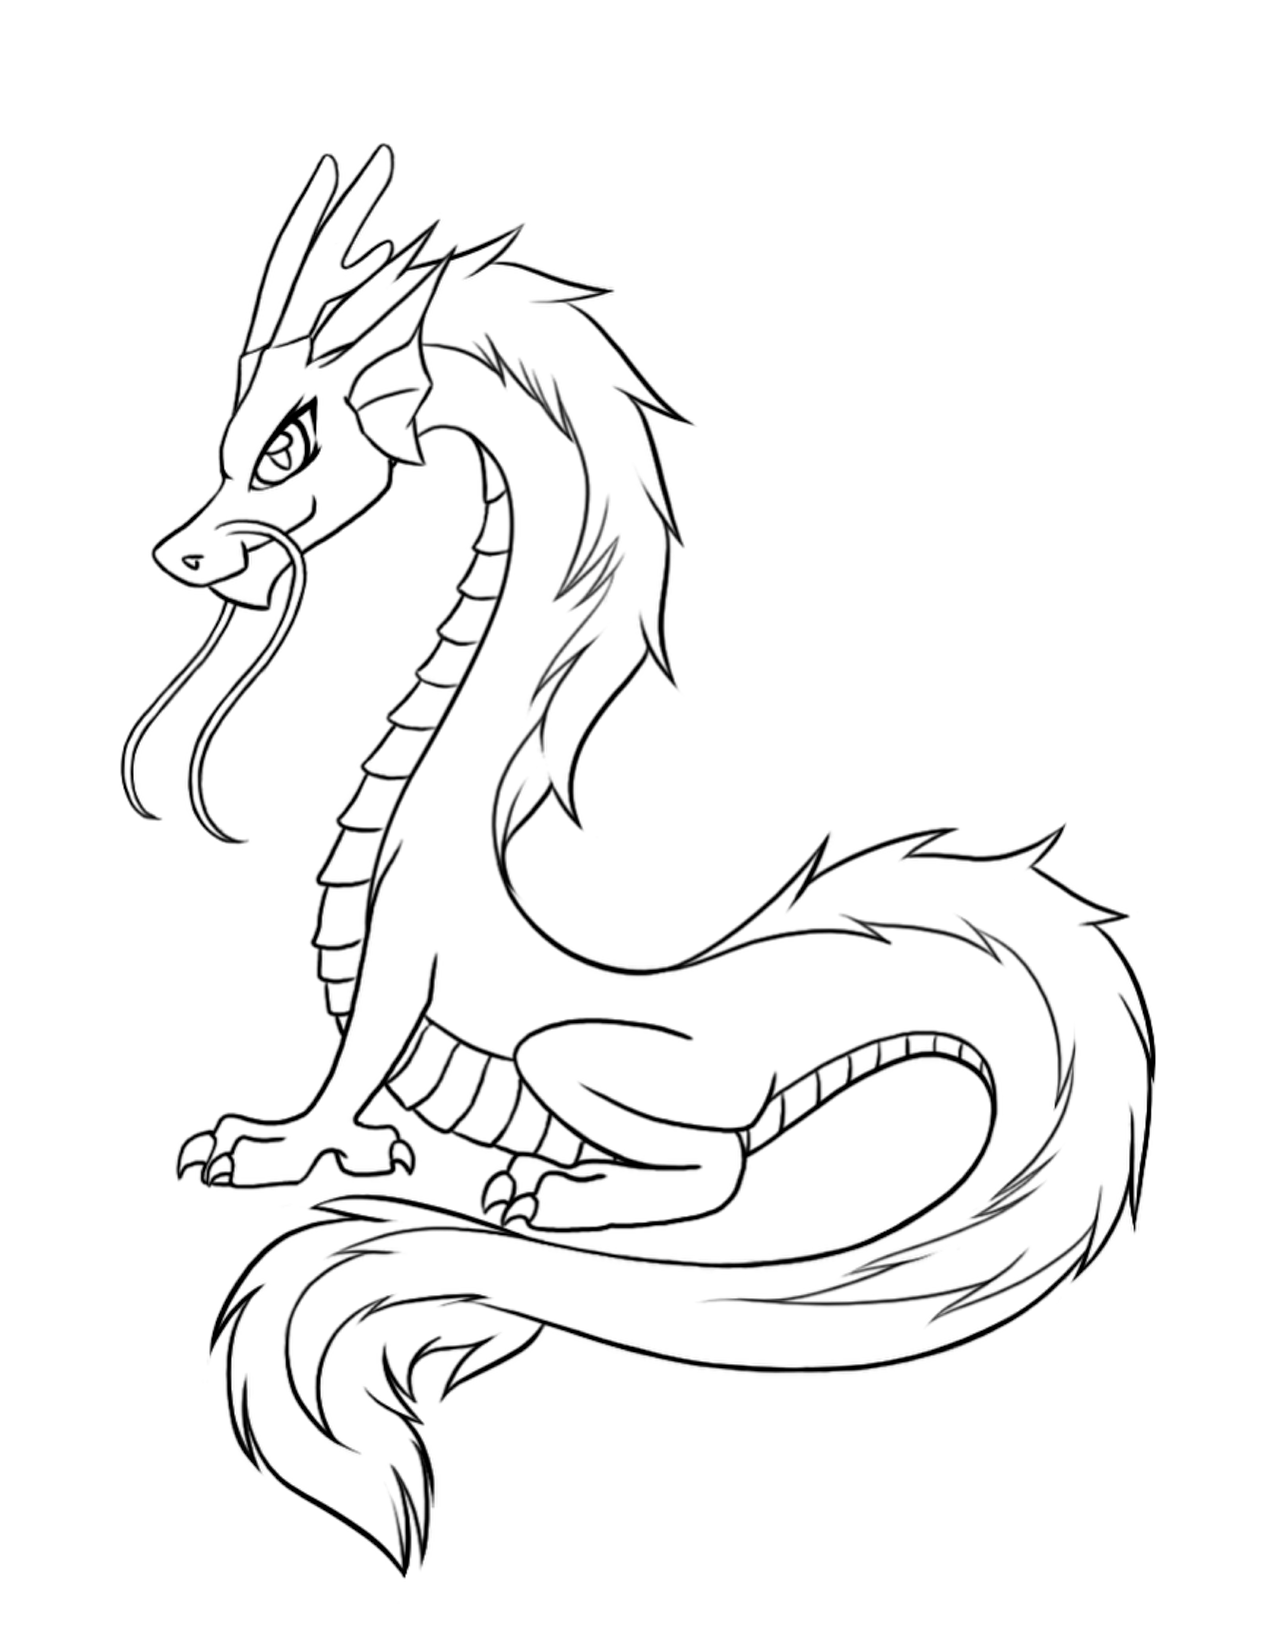 dragon coloring pages advanced dragon coloring pages at getdrawings free download pages coloring dragon